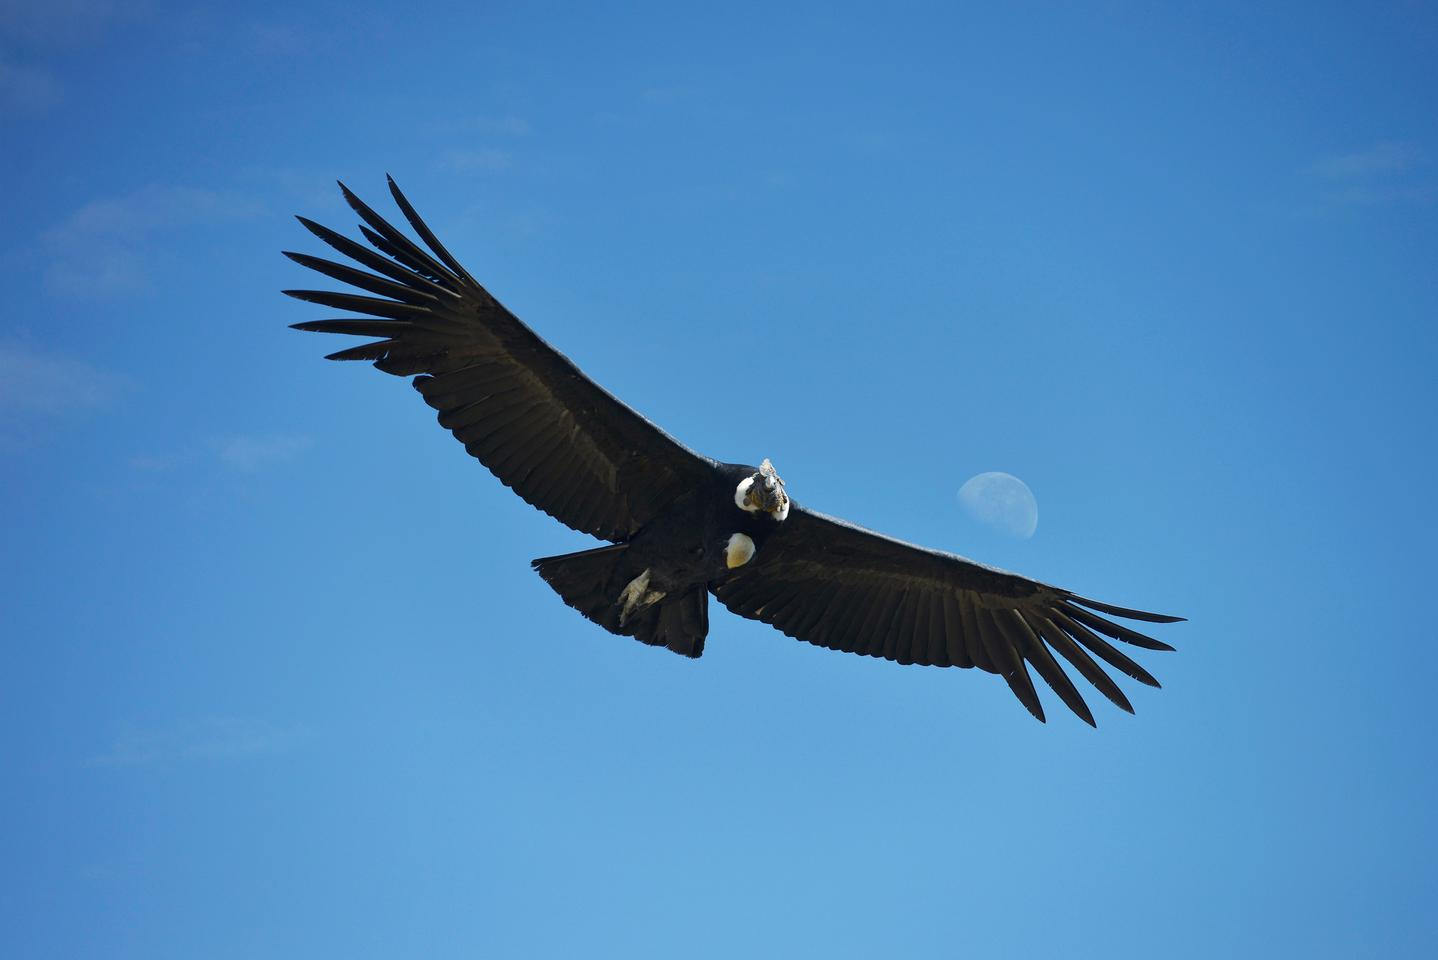 Flight tracking suggests that condors rarely flap their wings in flight""